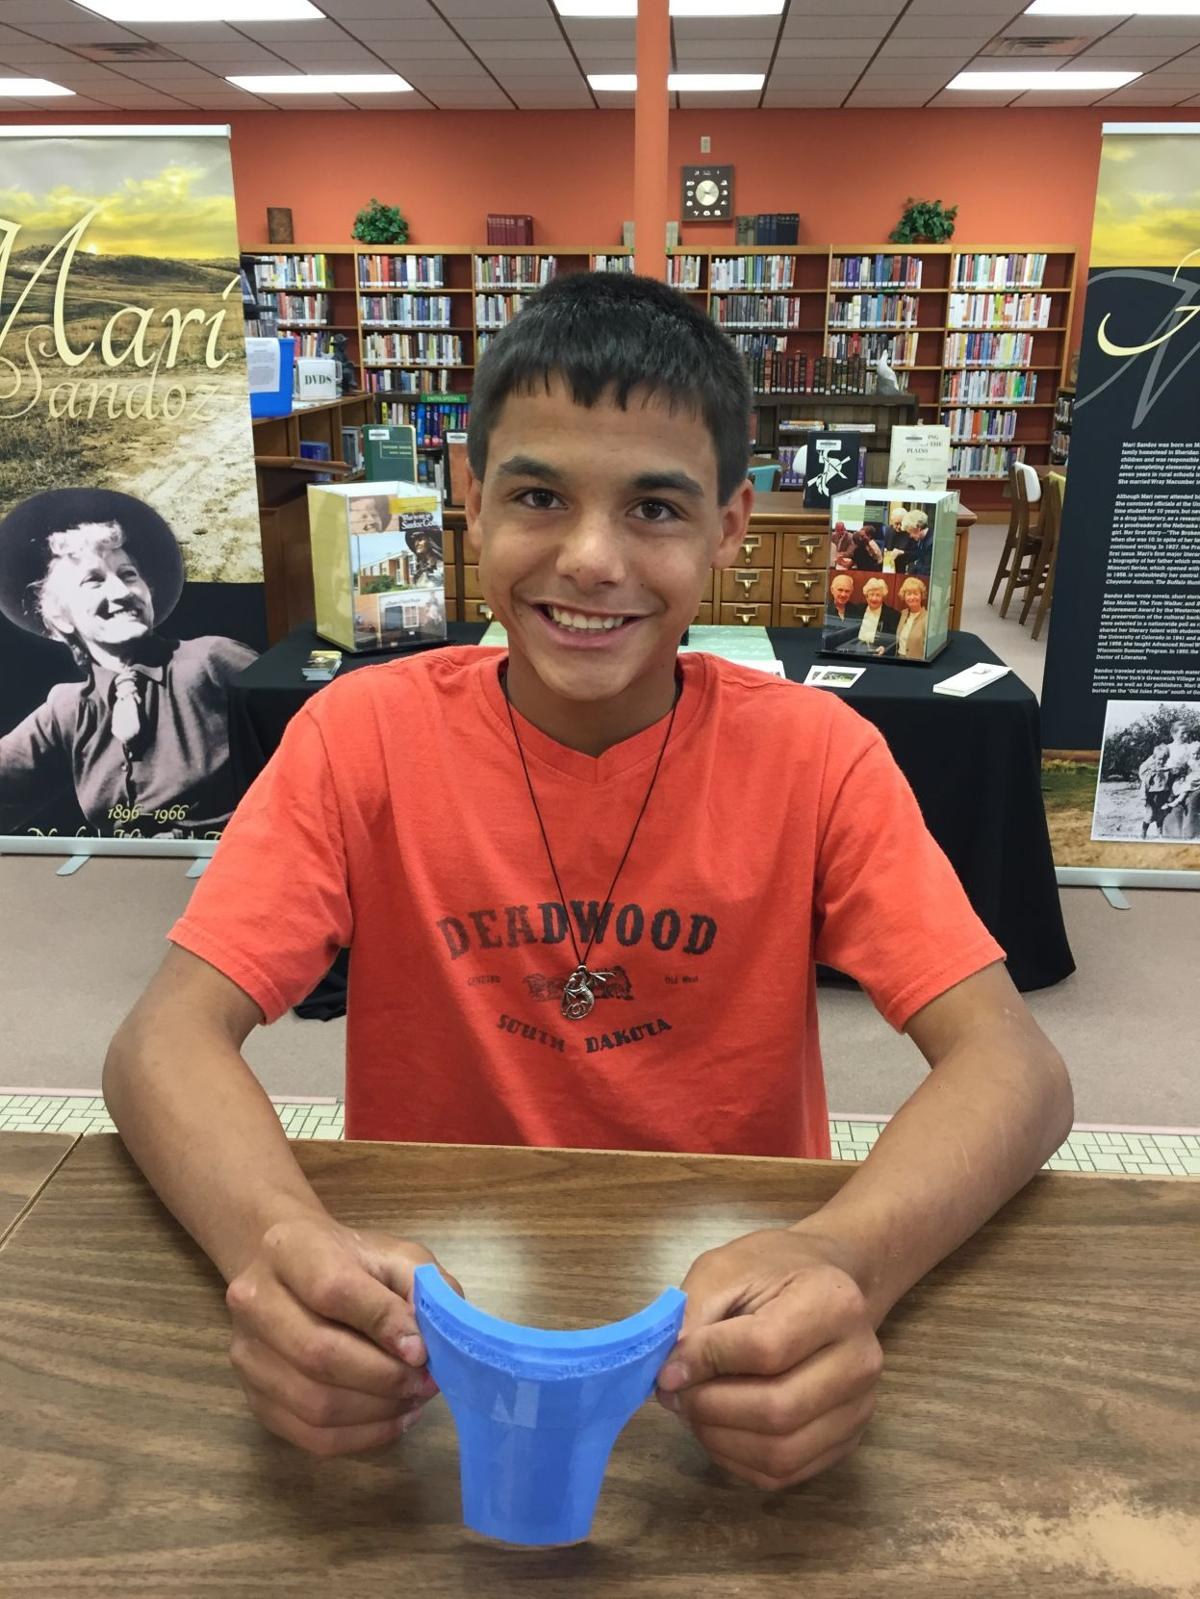 Students in Kimball explore new dimensions thanks to local library and visionary patron